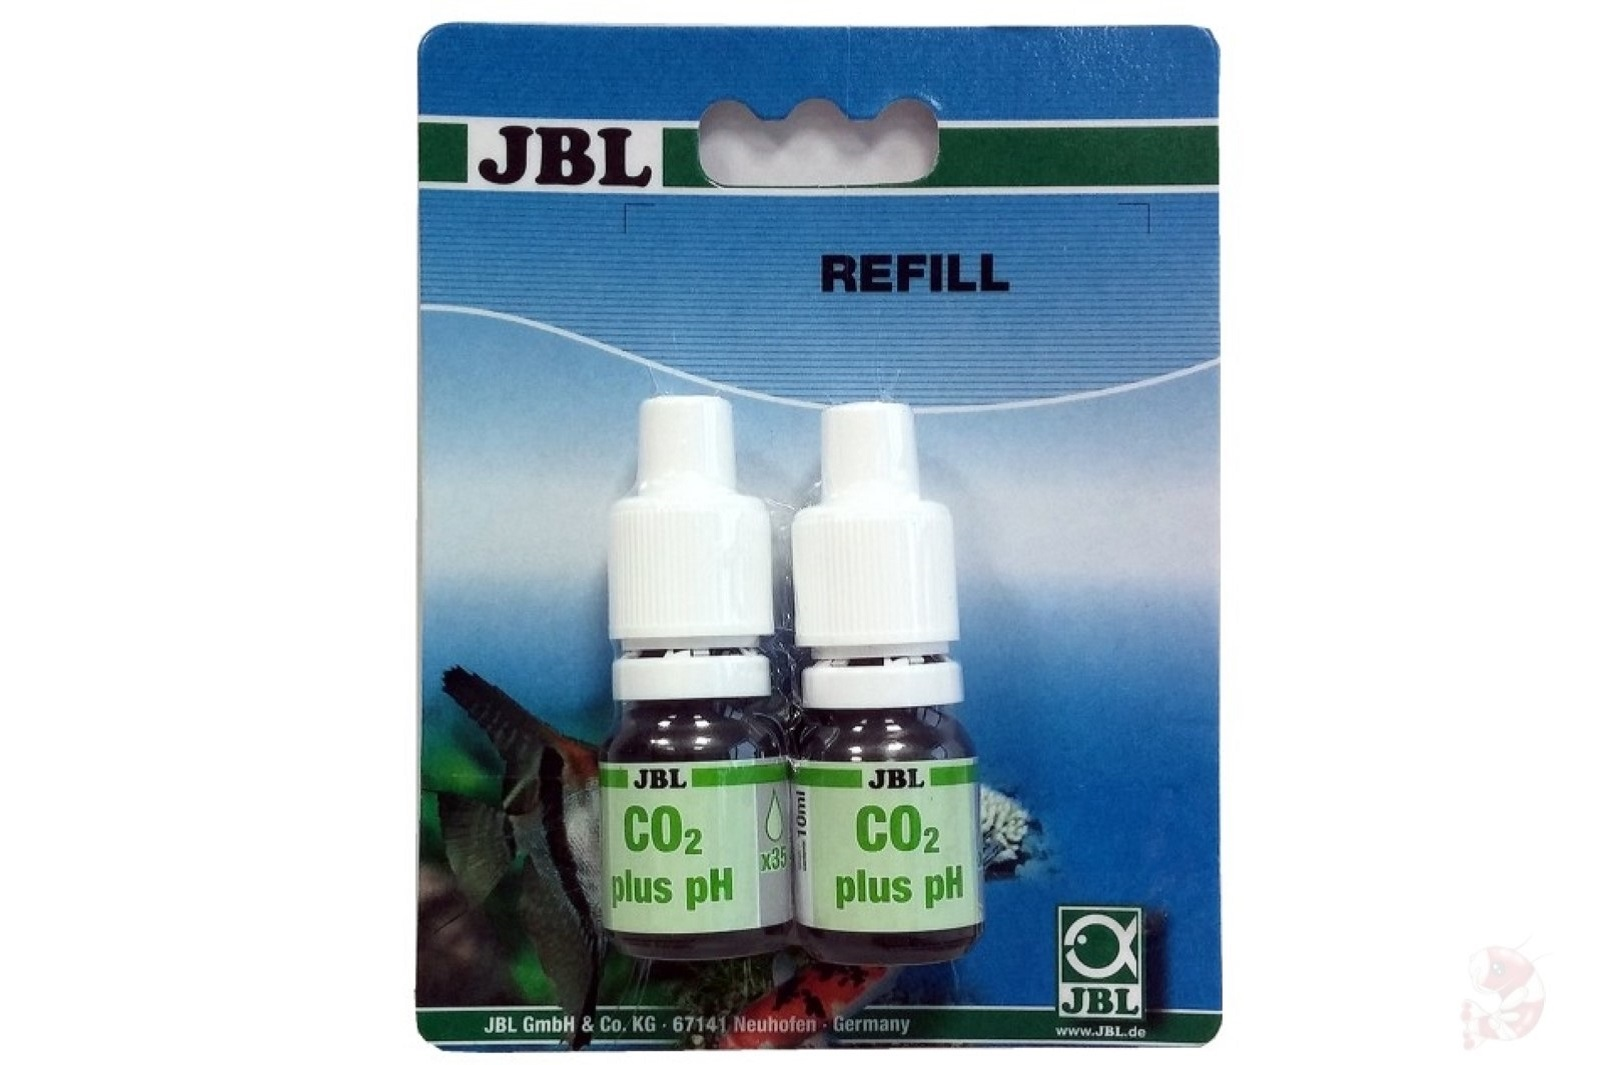 JBL CO2-pH Permanent Reagens Nachfüllpack